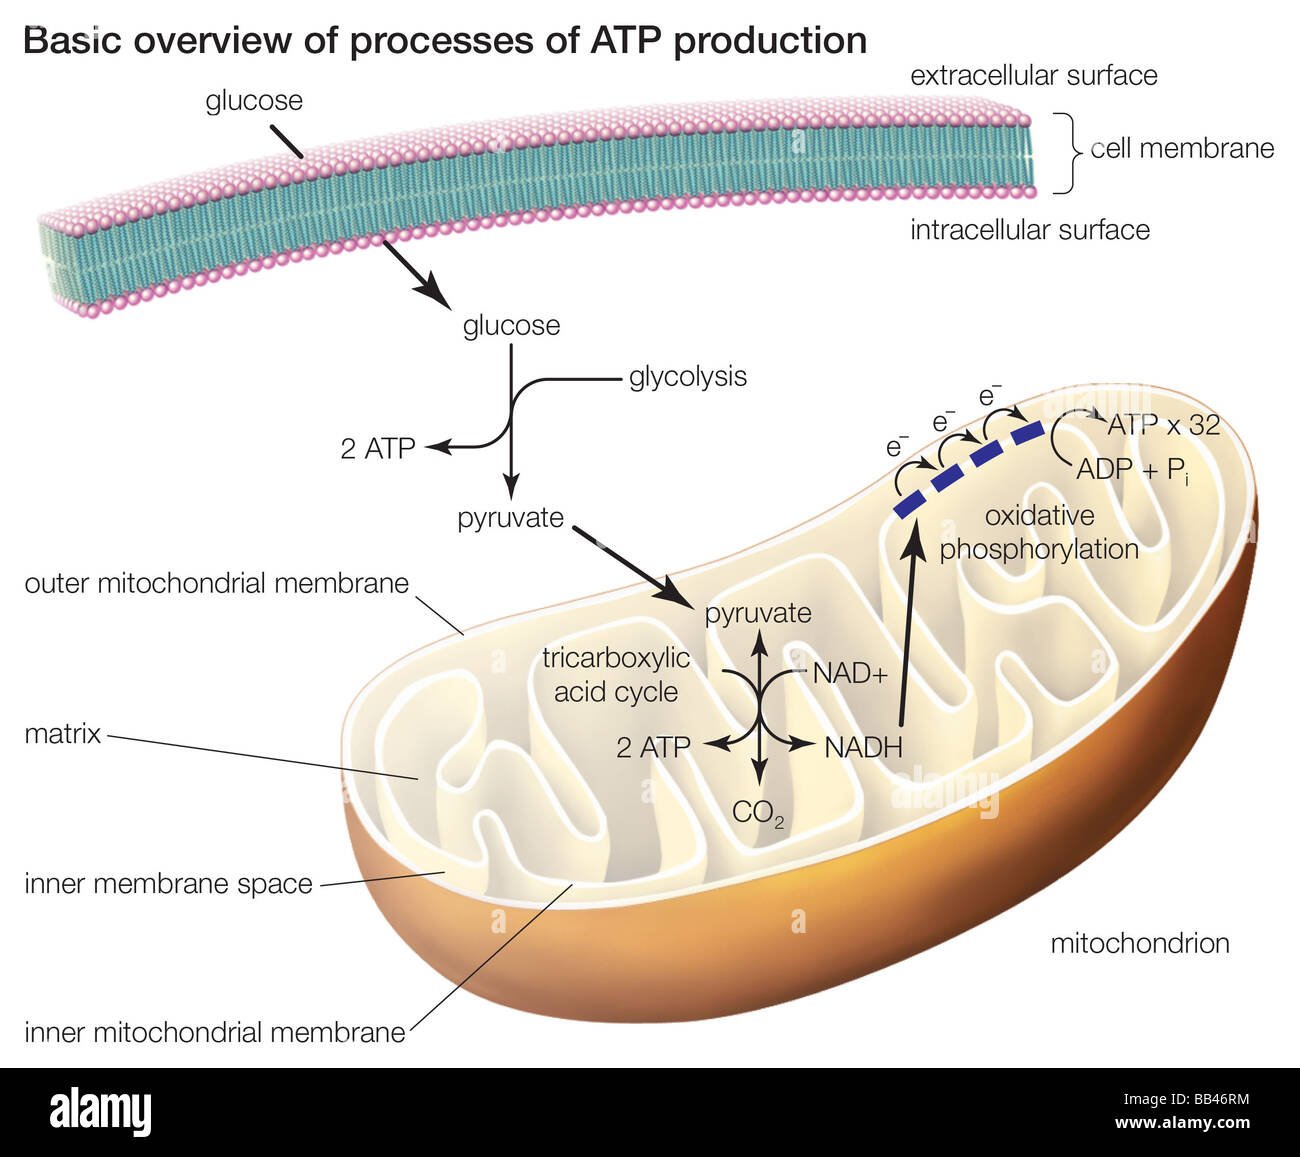 adp molecule diagram labeled 2005 expedition fuse box atp stock photos and images alamy